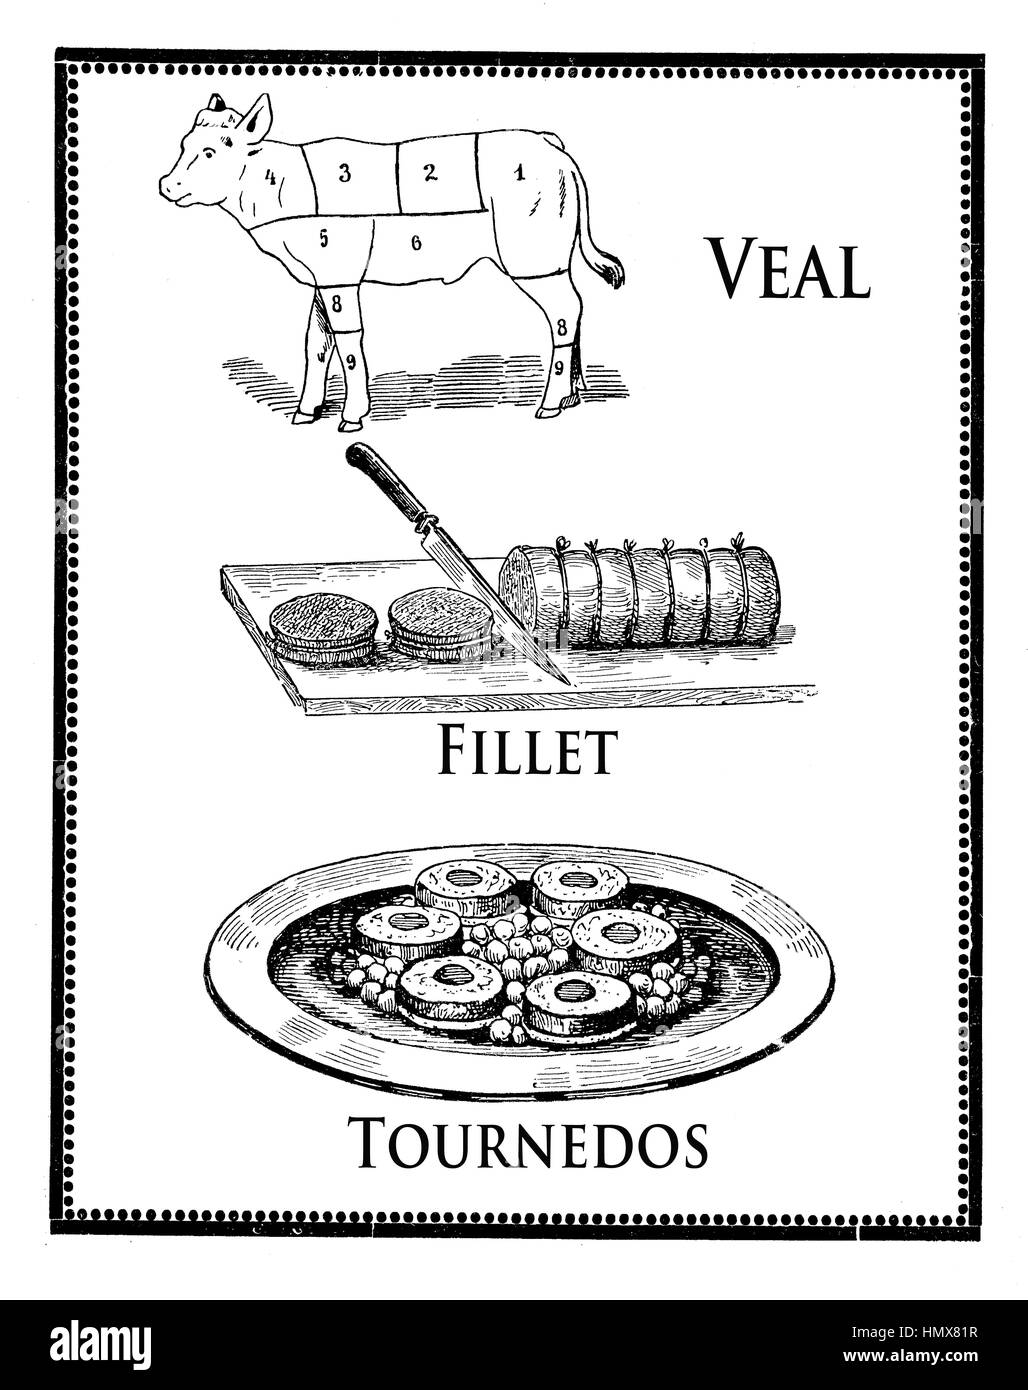 Vintage cuisine engraving, roasted veal fillet, tournedos and calf diagram with numbered sections - Stock Image